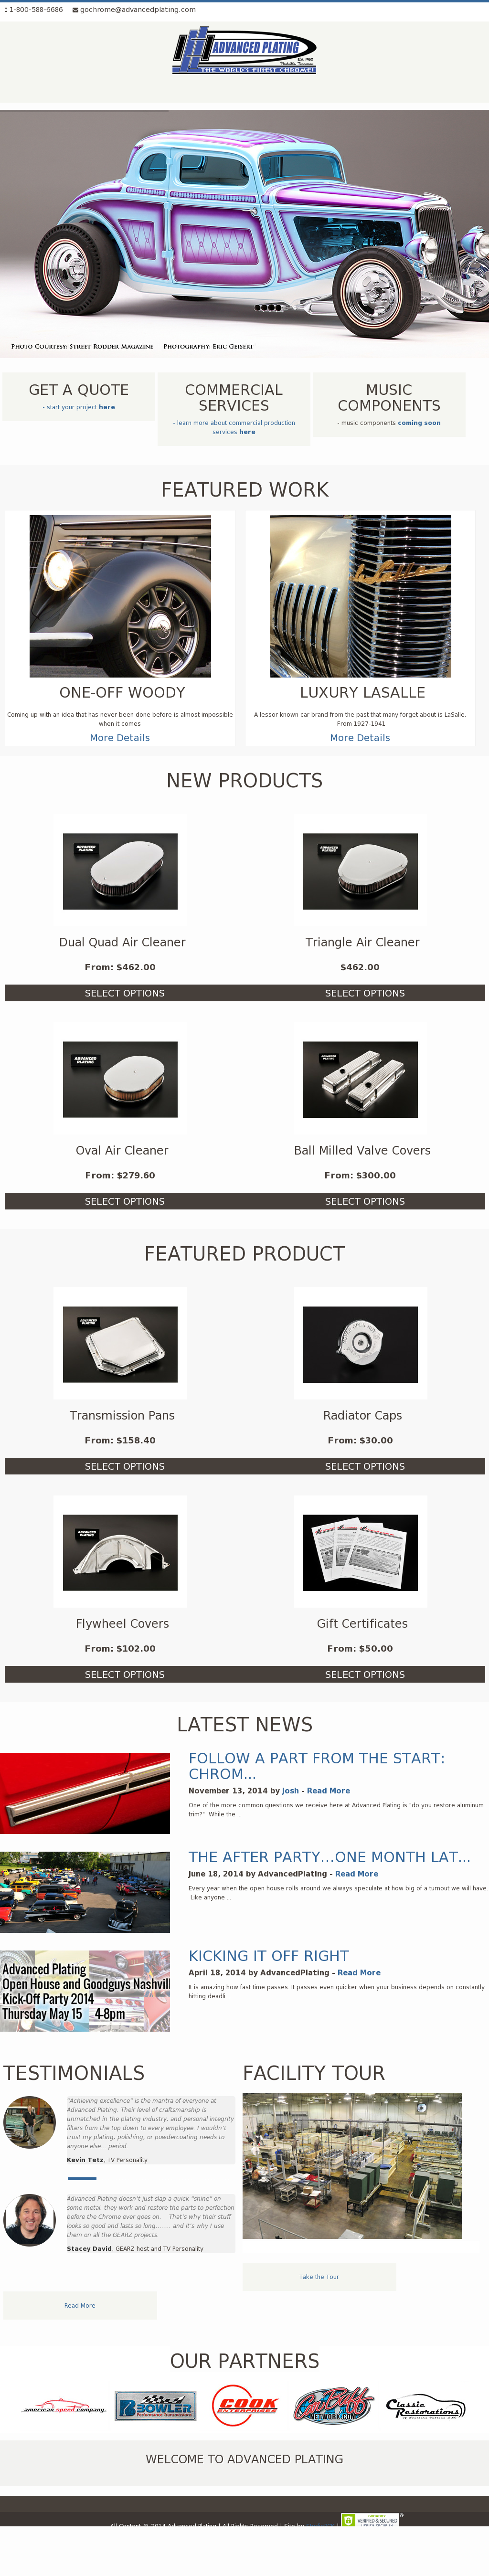 Advanced Plating & Powder Coating Competitors, Revenue and